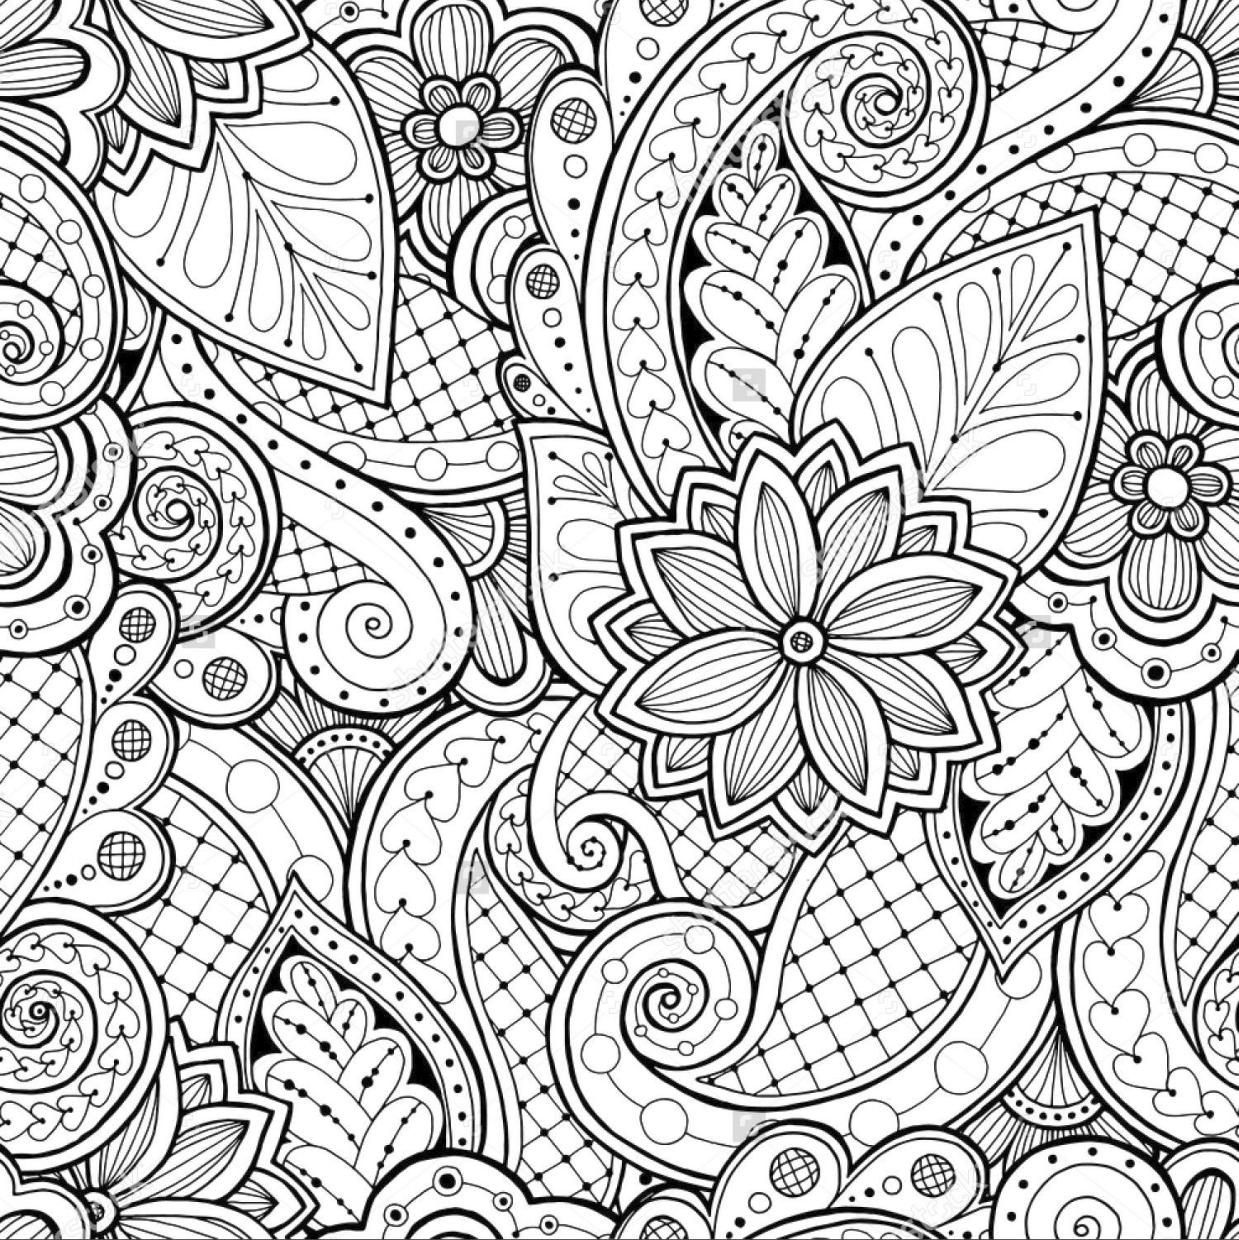 Floral Pattern Coloring Pages for Adult Free imk2